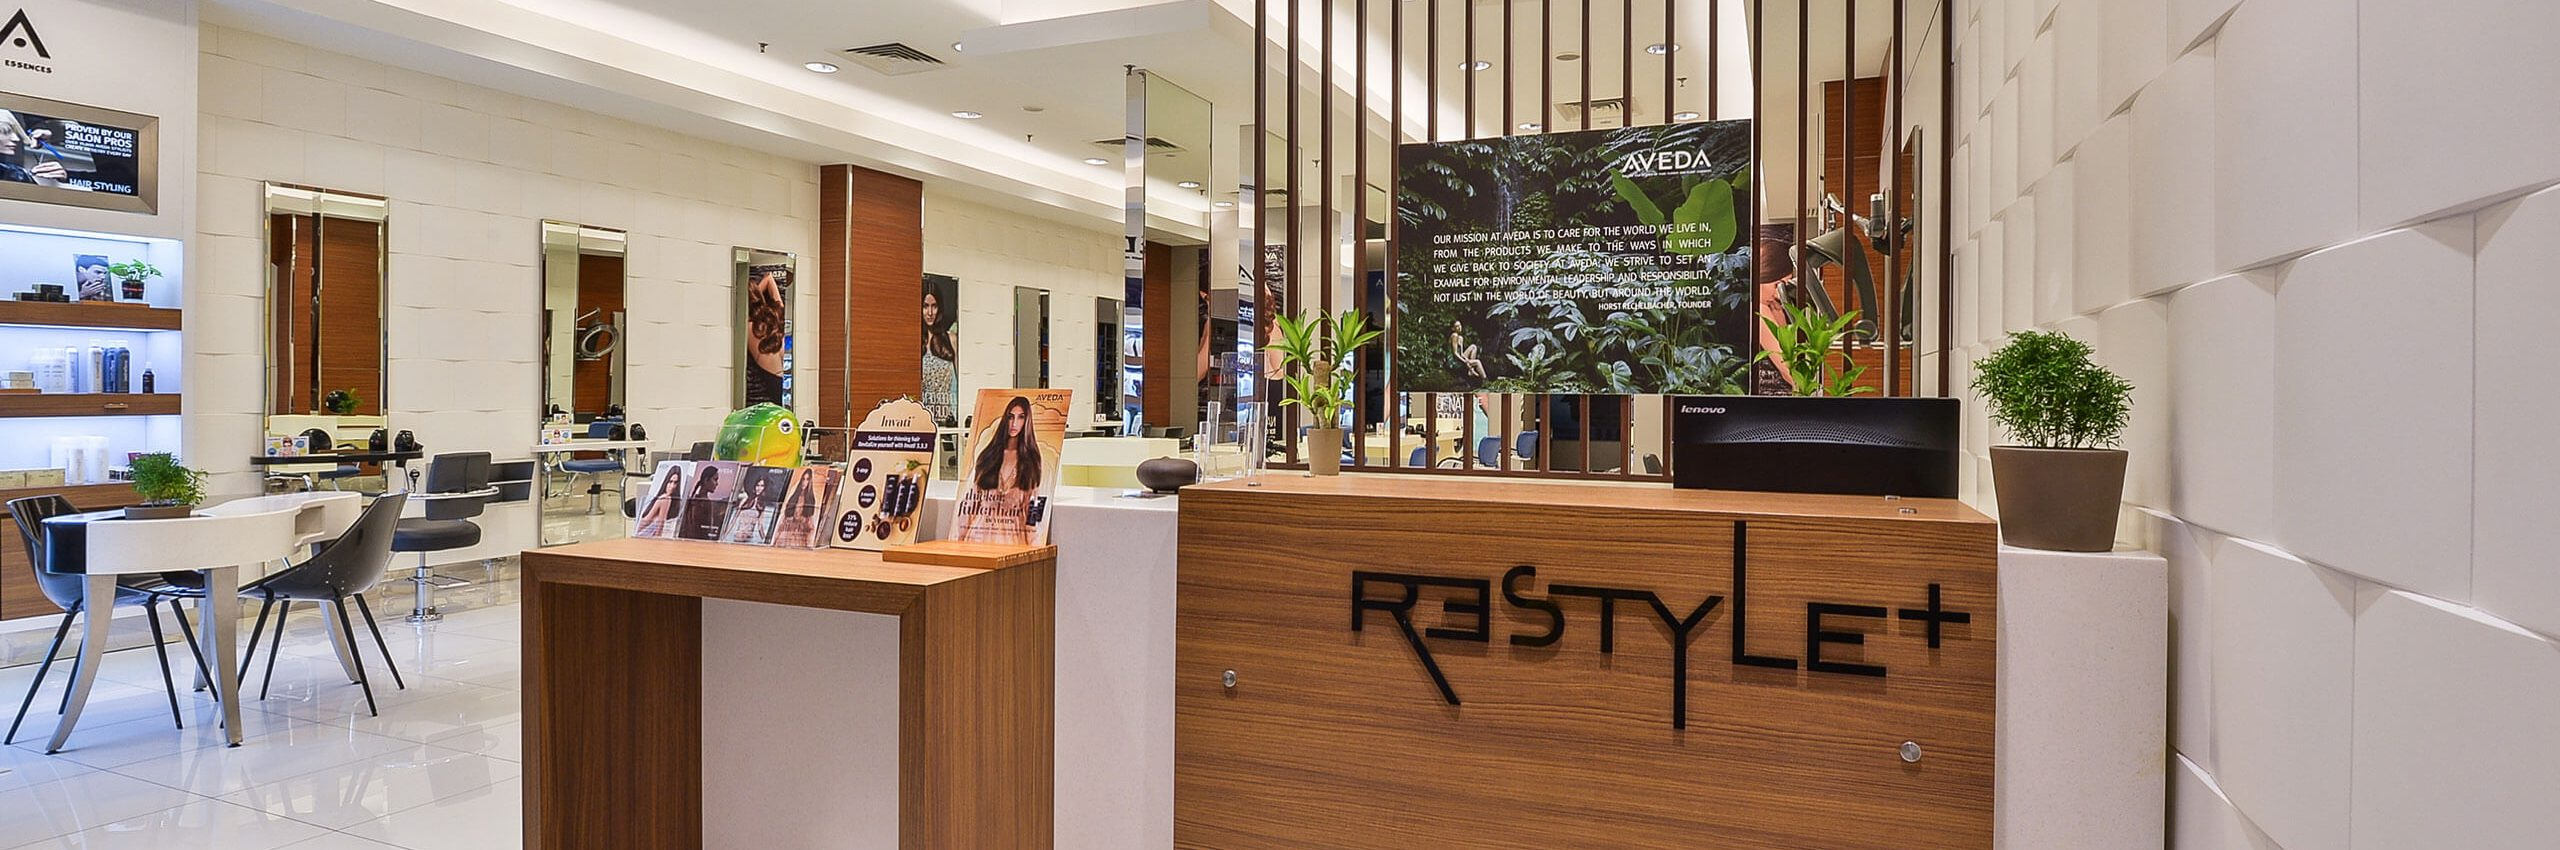 Sunway Pyramid Restyle branch of salons